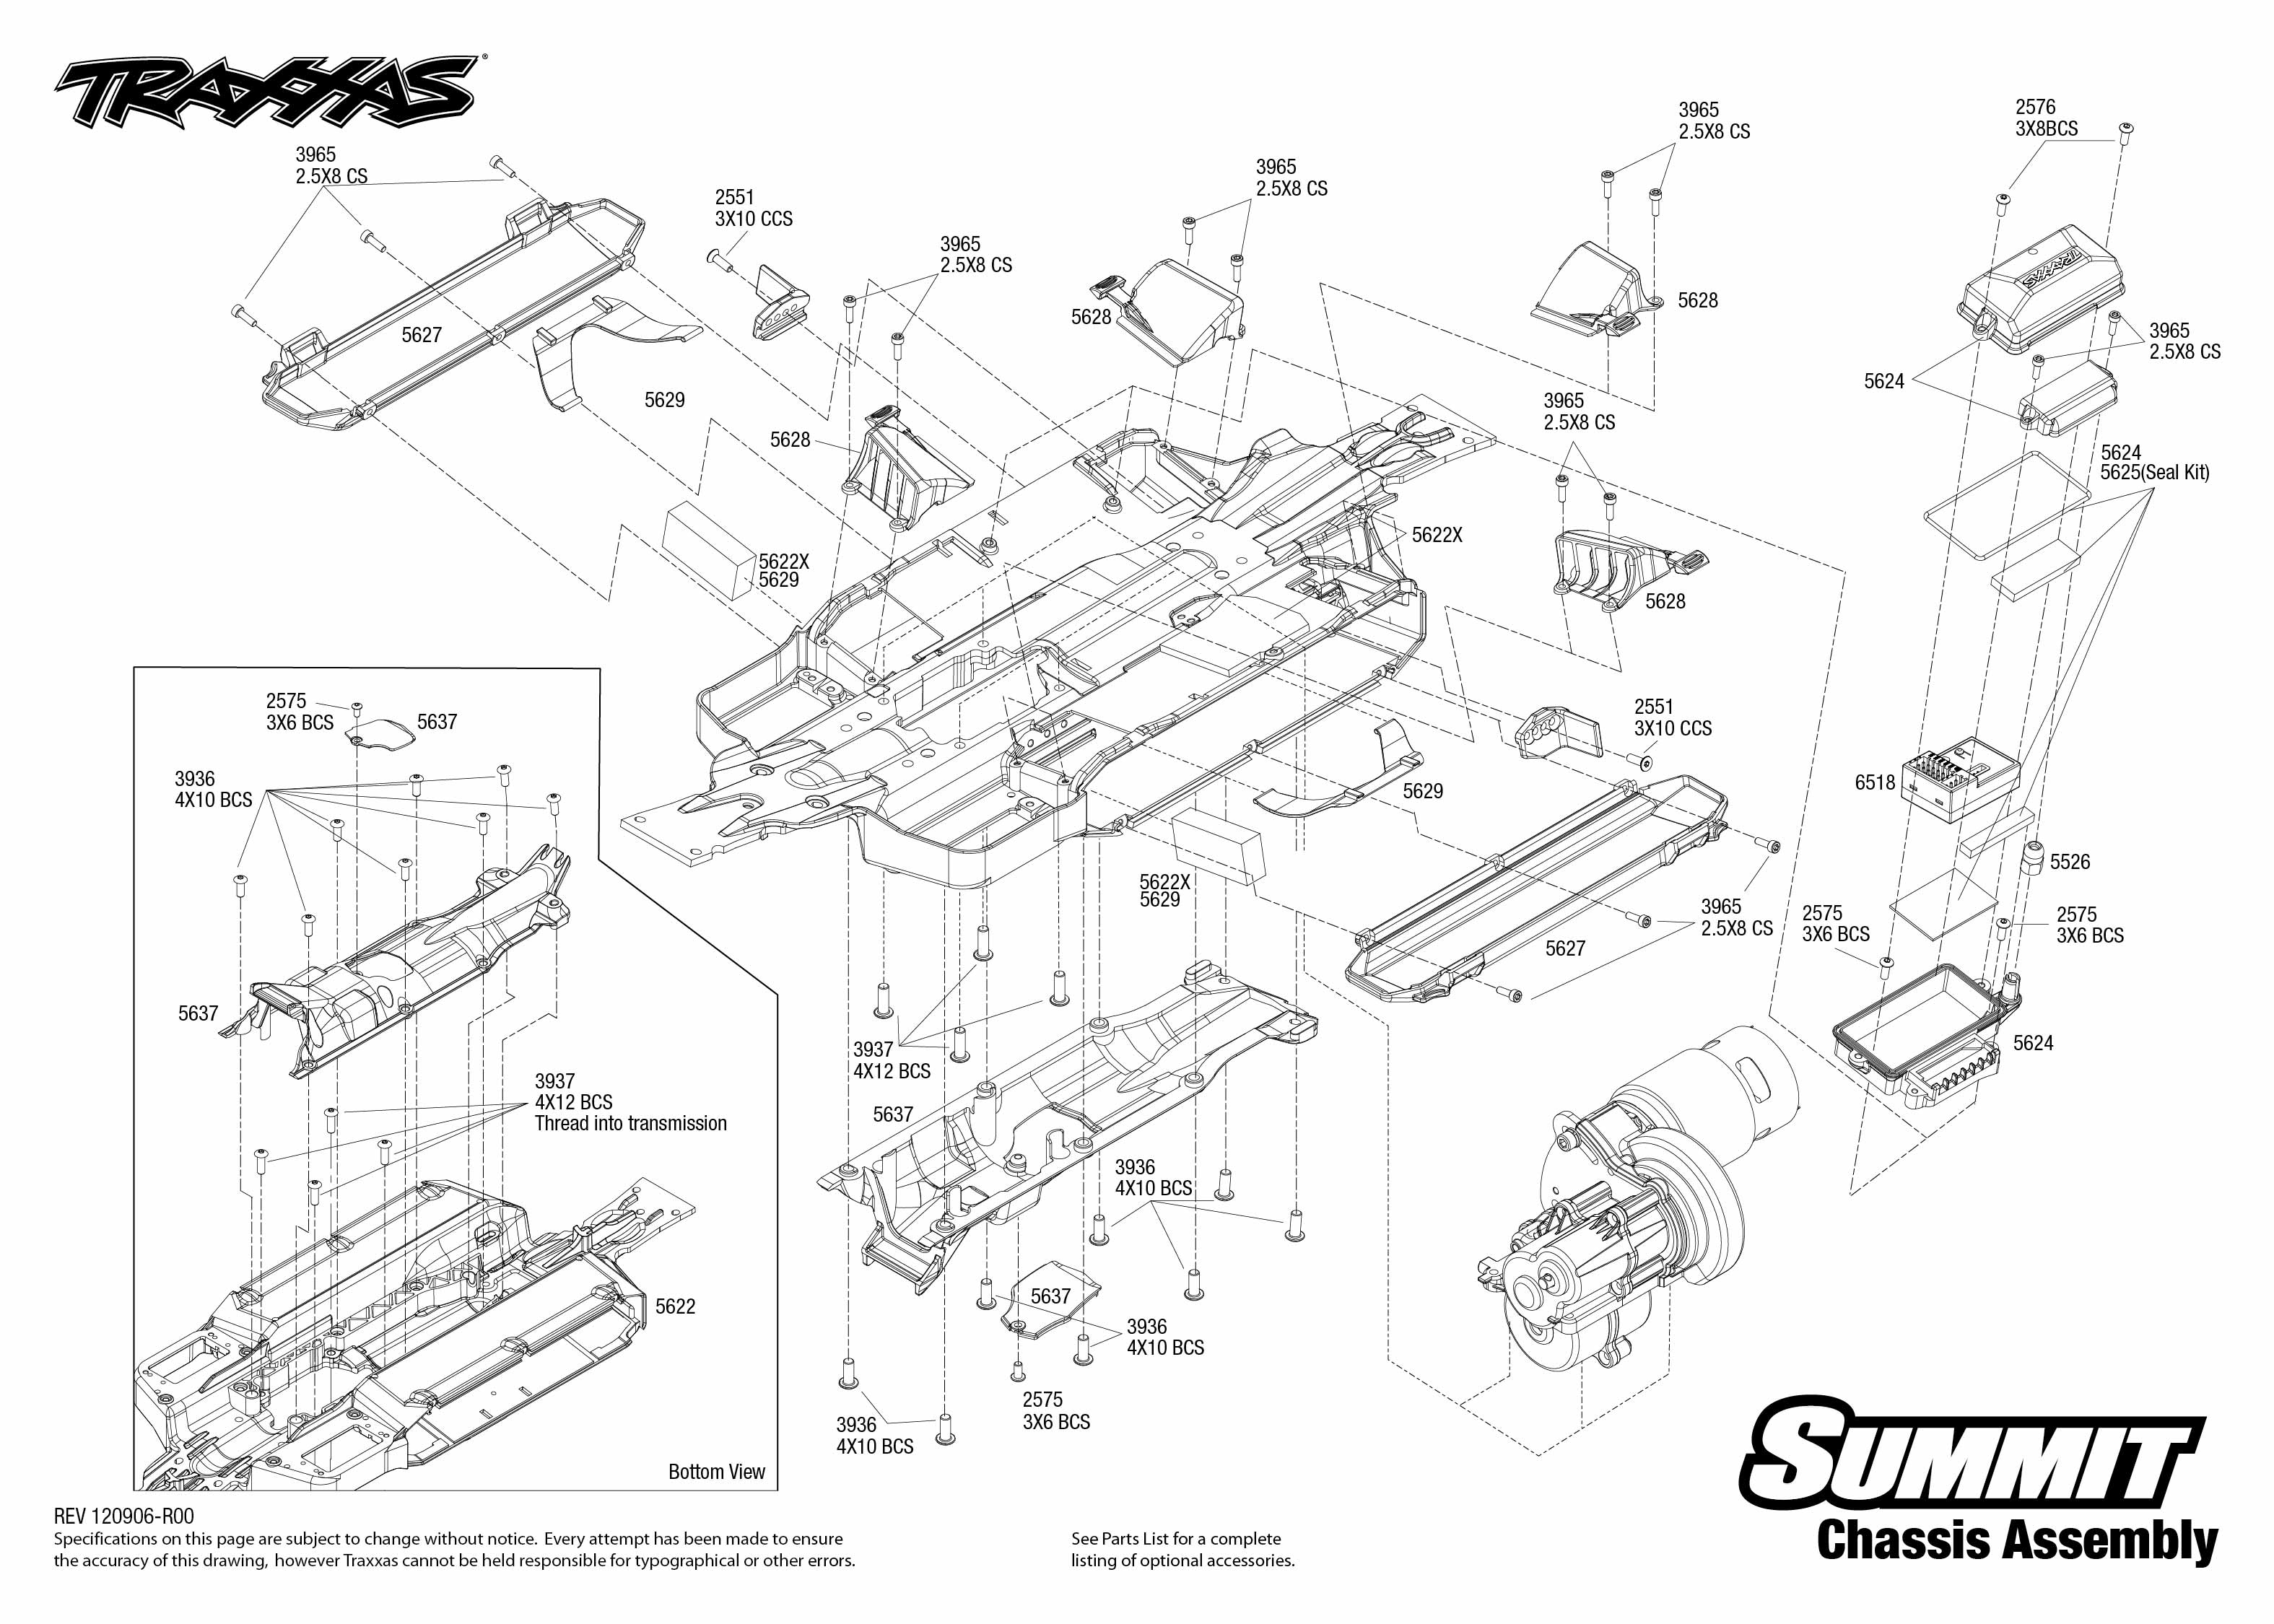 5607 120907 Chassis traxxas 1 10 scale summit 4wd extreme terrain monster truck 5607l traxxas summit wiring diagram at soozxer.org